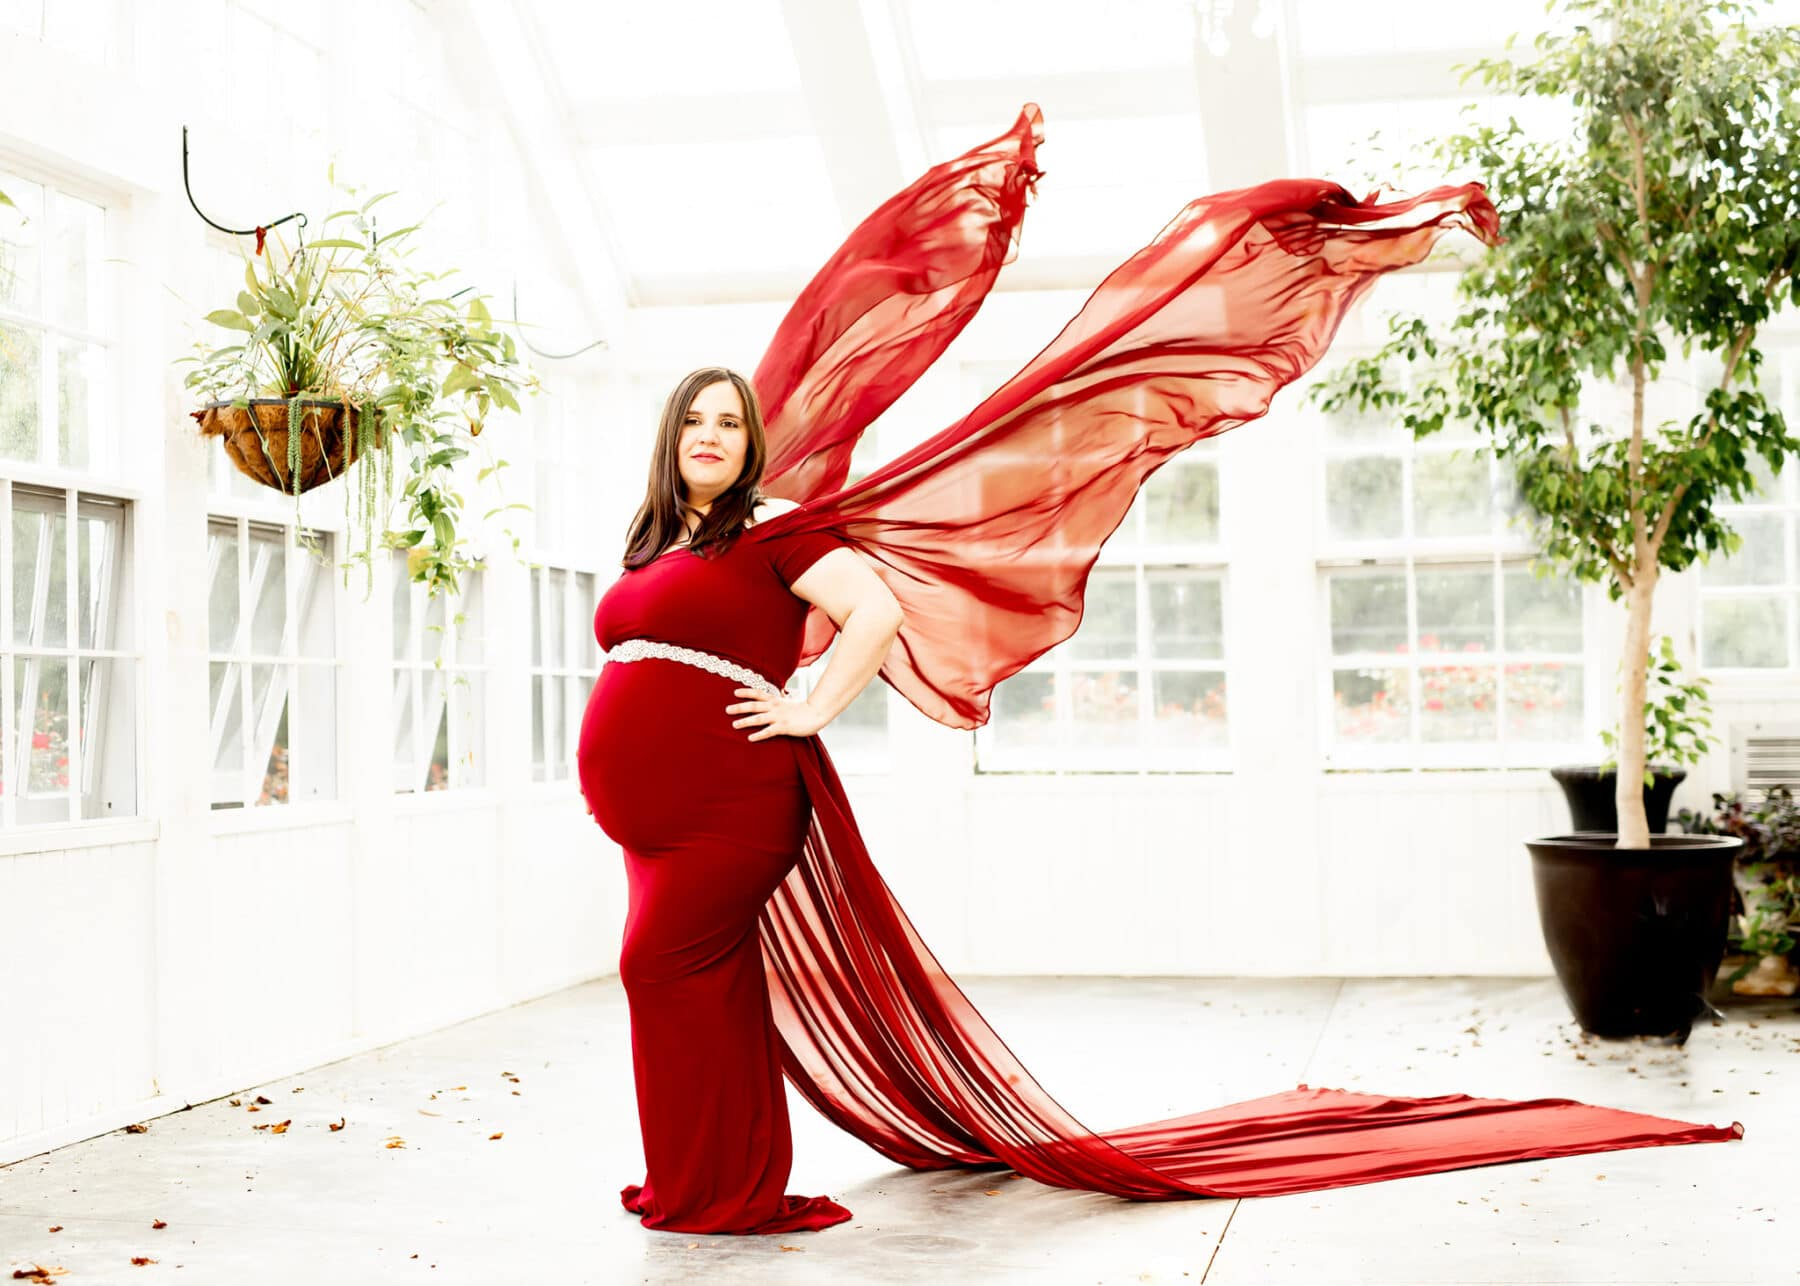 Unique maternity session photo ideas by Art Inspired Images